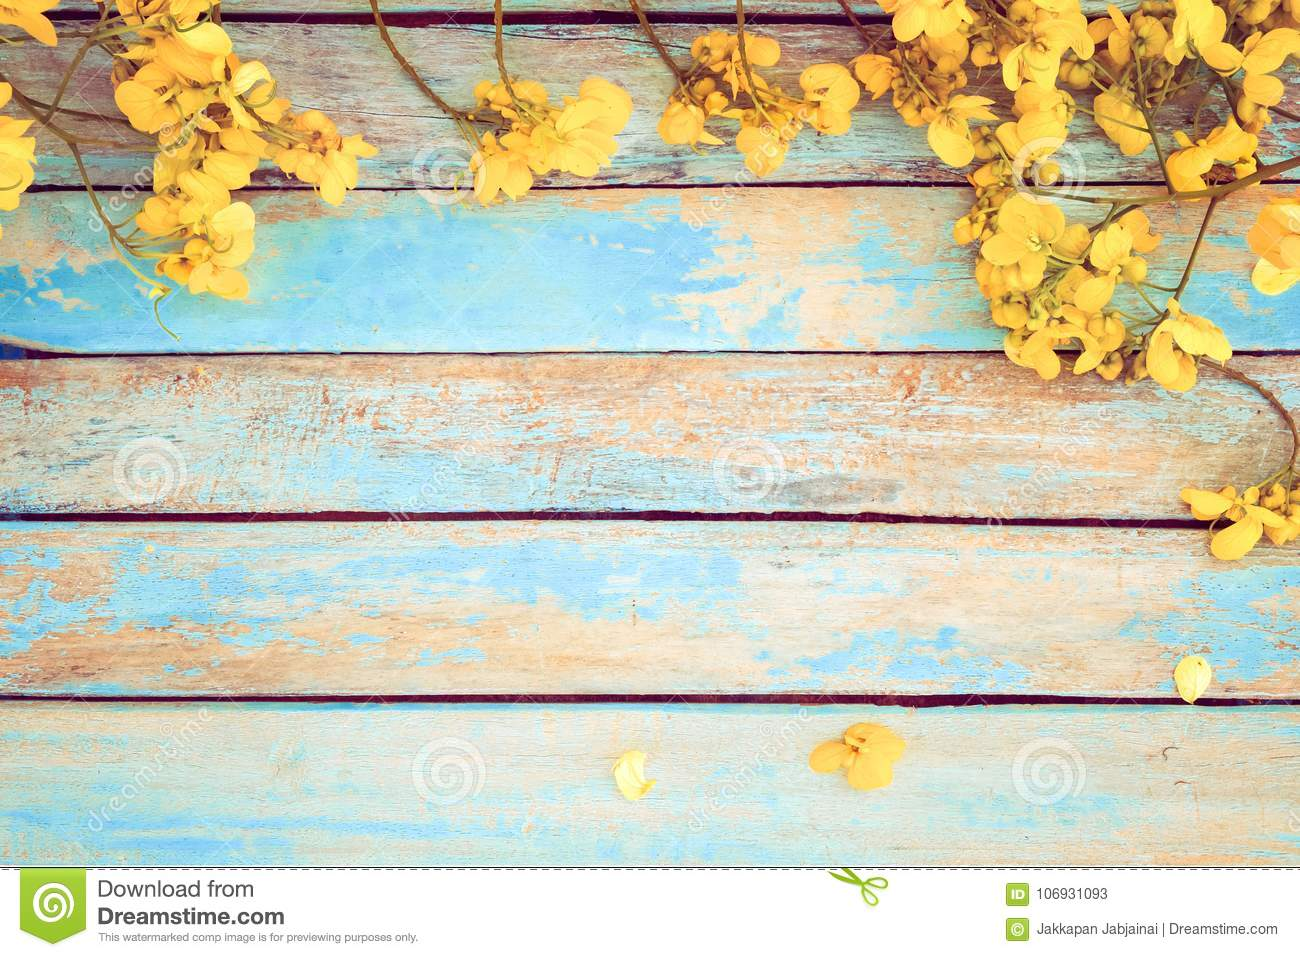 Yellow Flowers On Vintage Wooden Background Stock Image